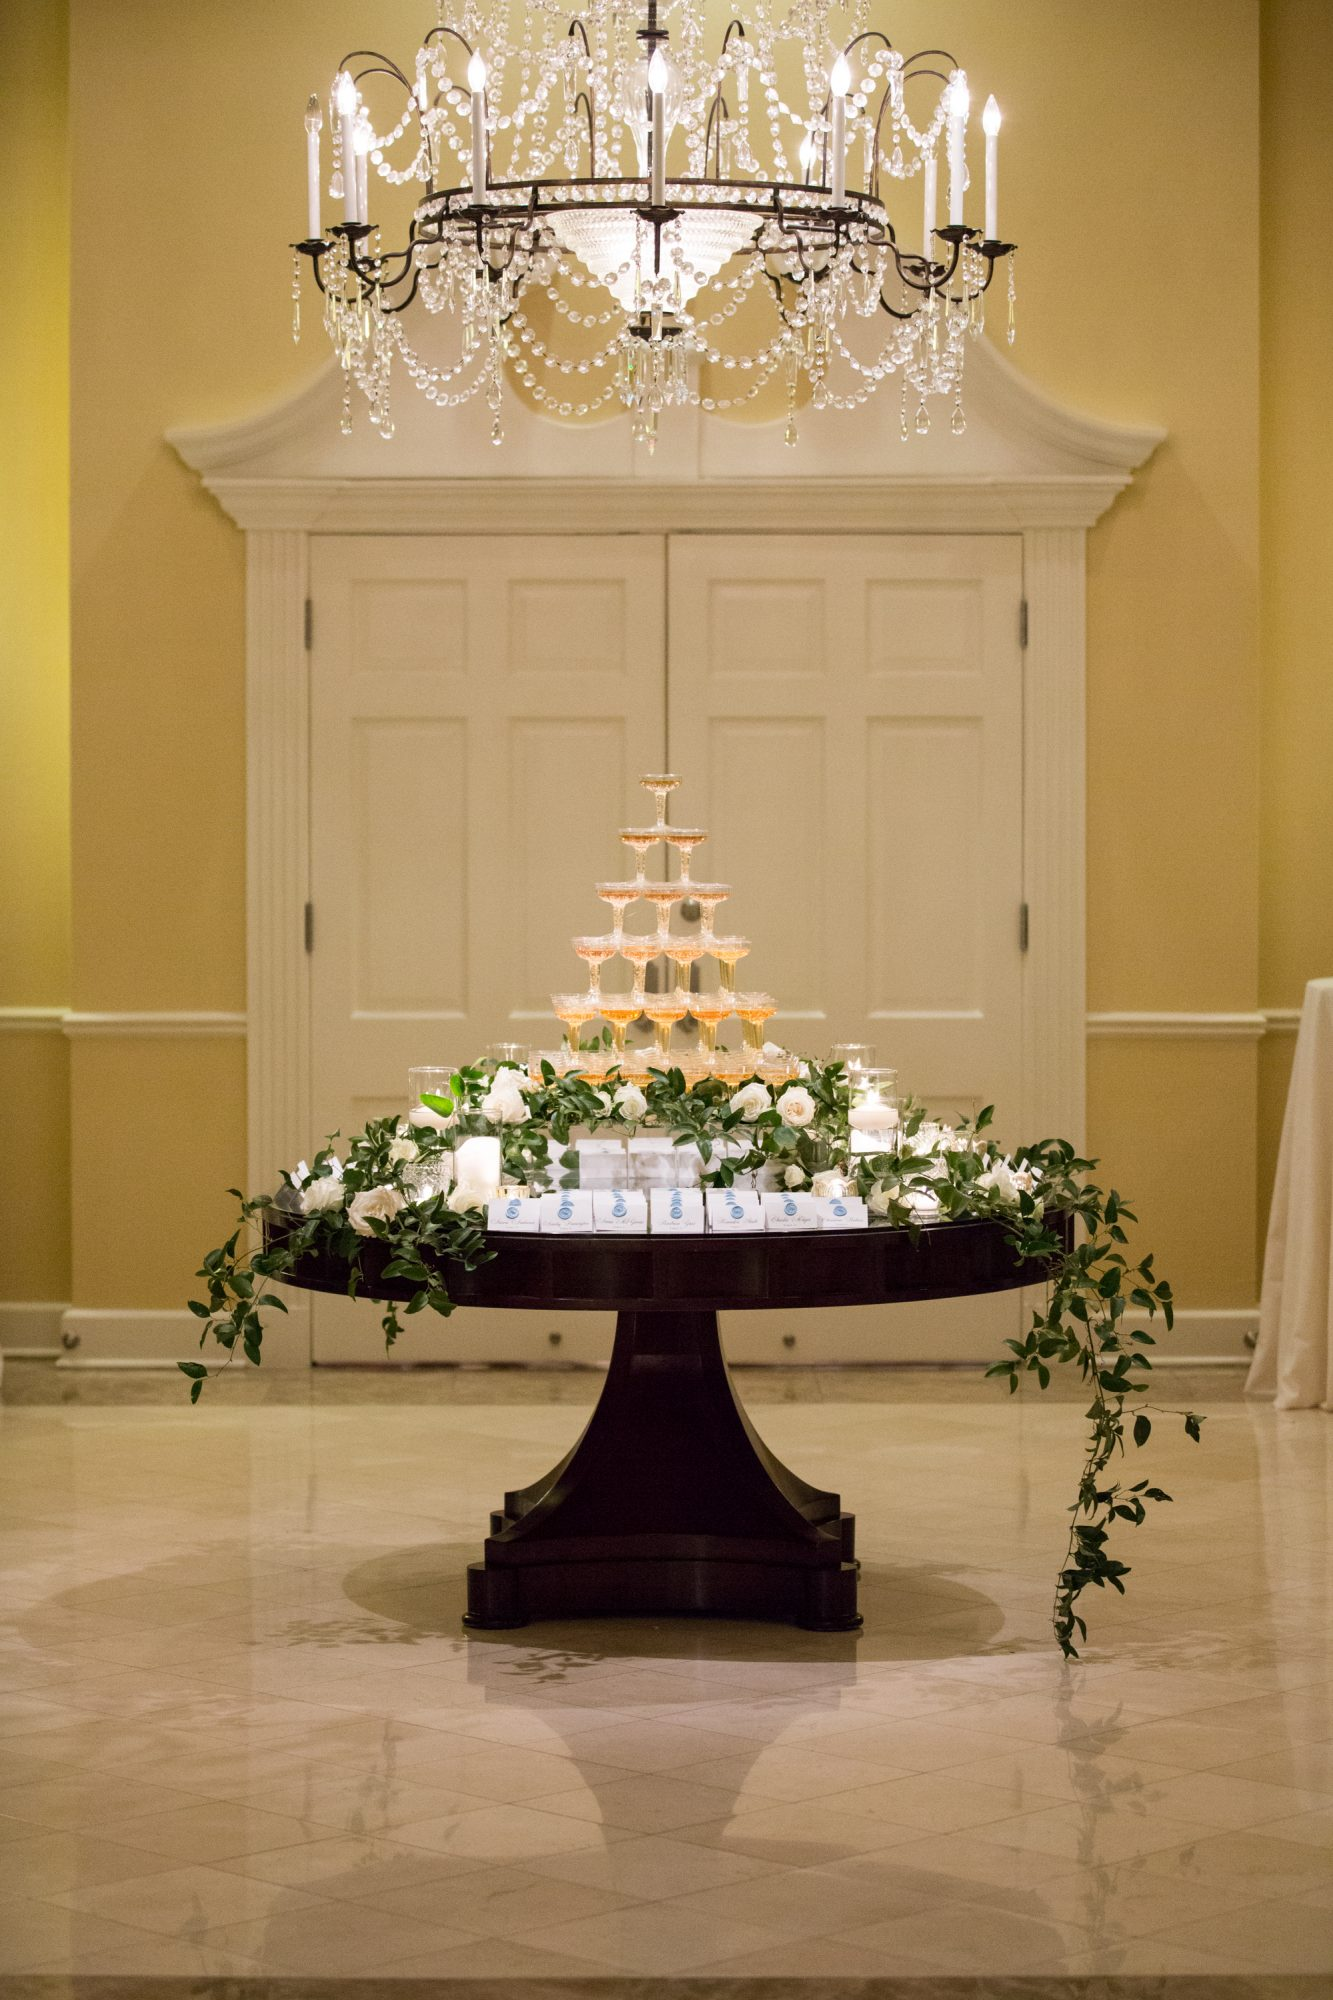 champagne tower on escort card table